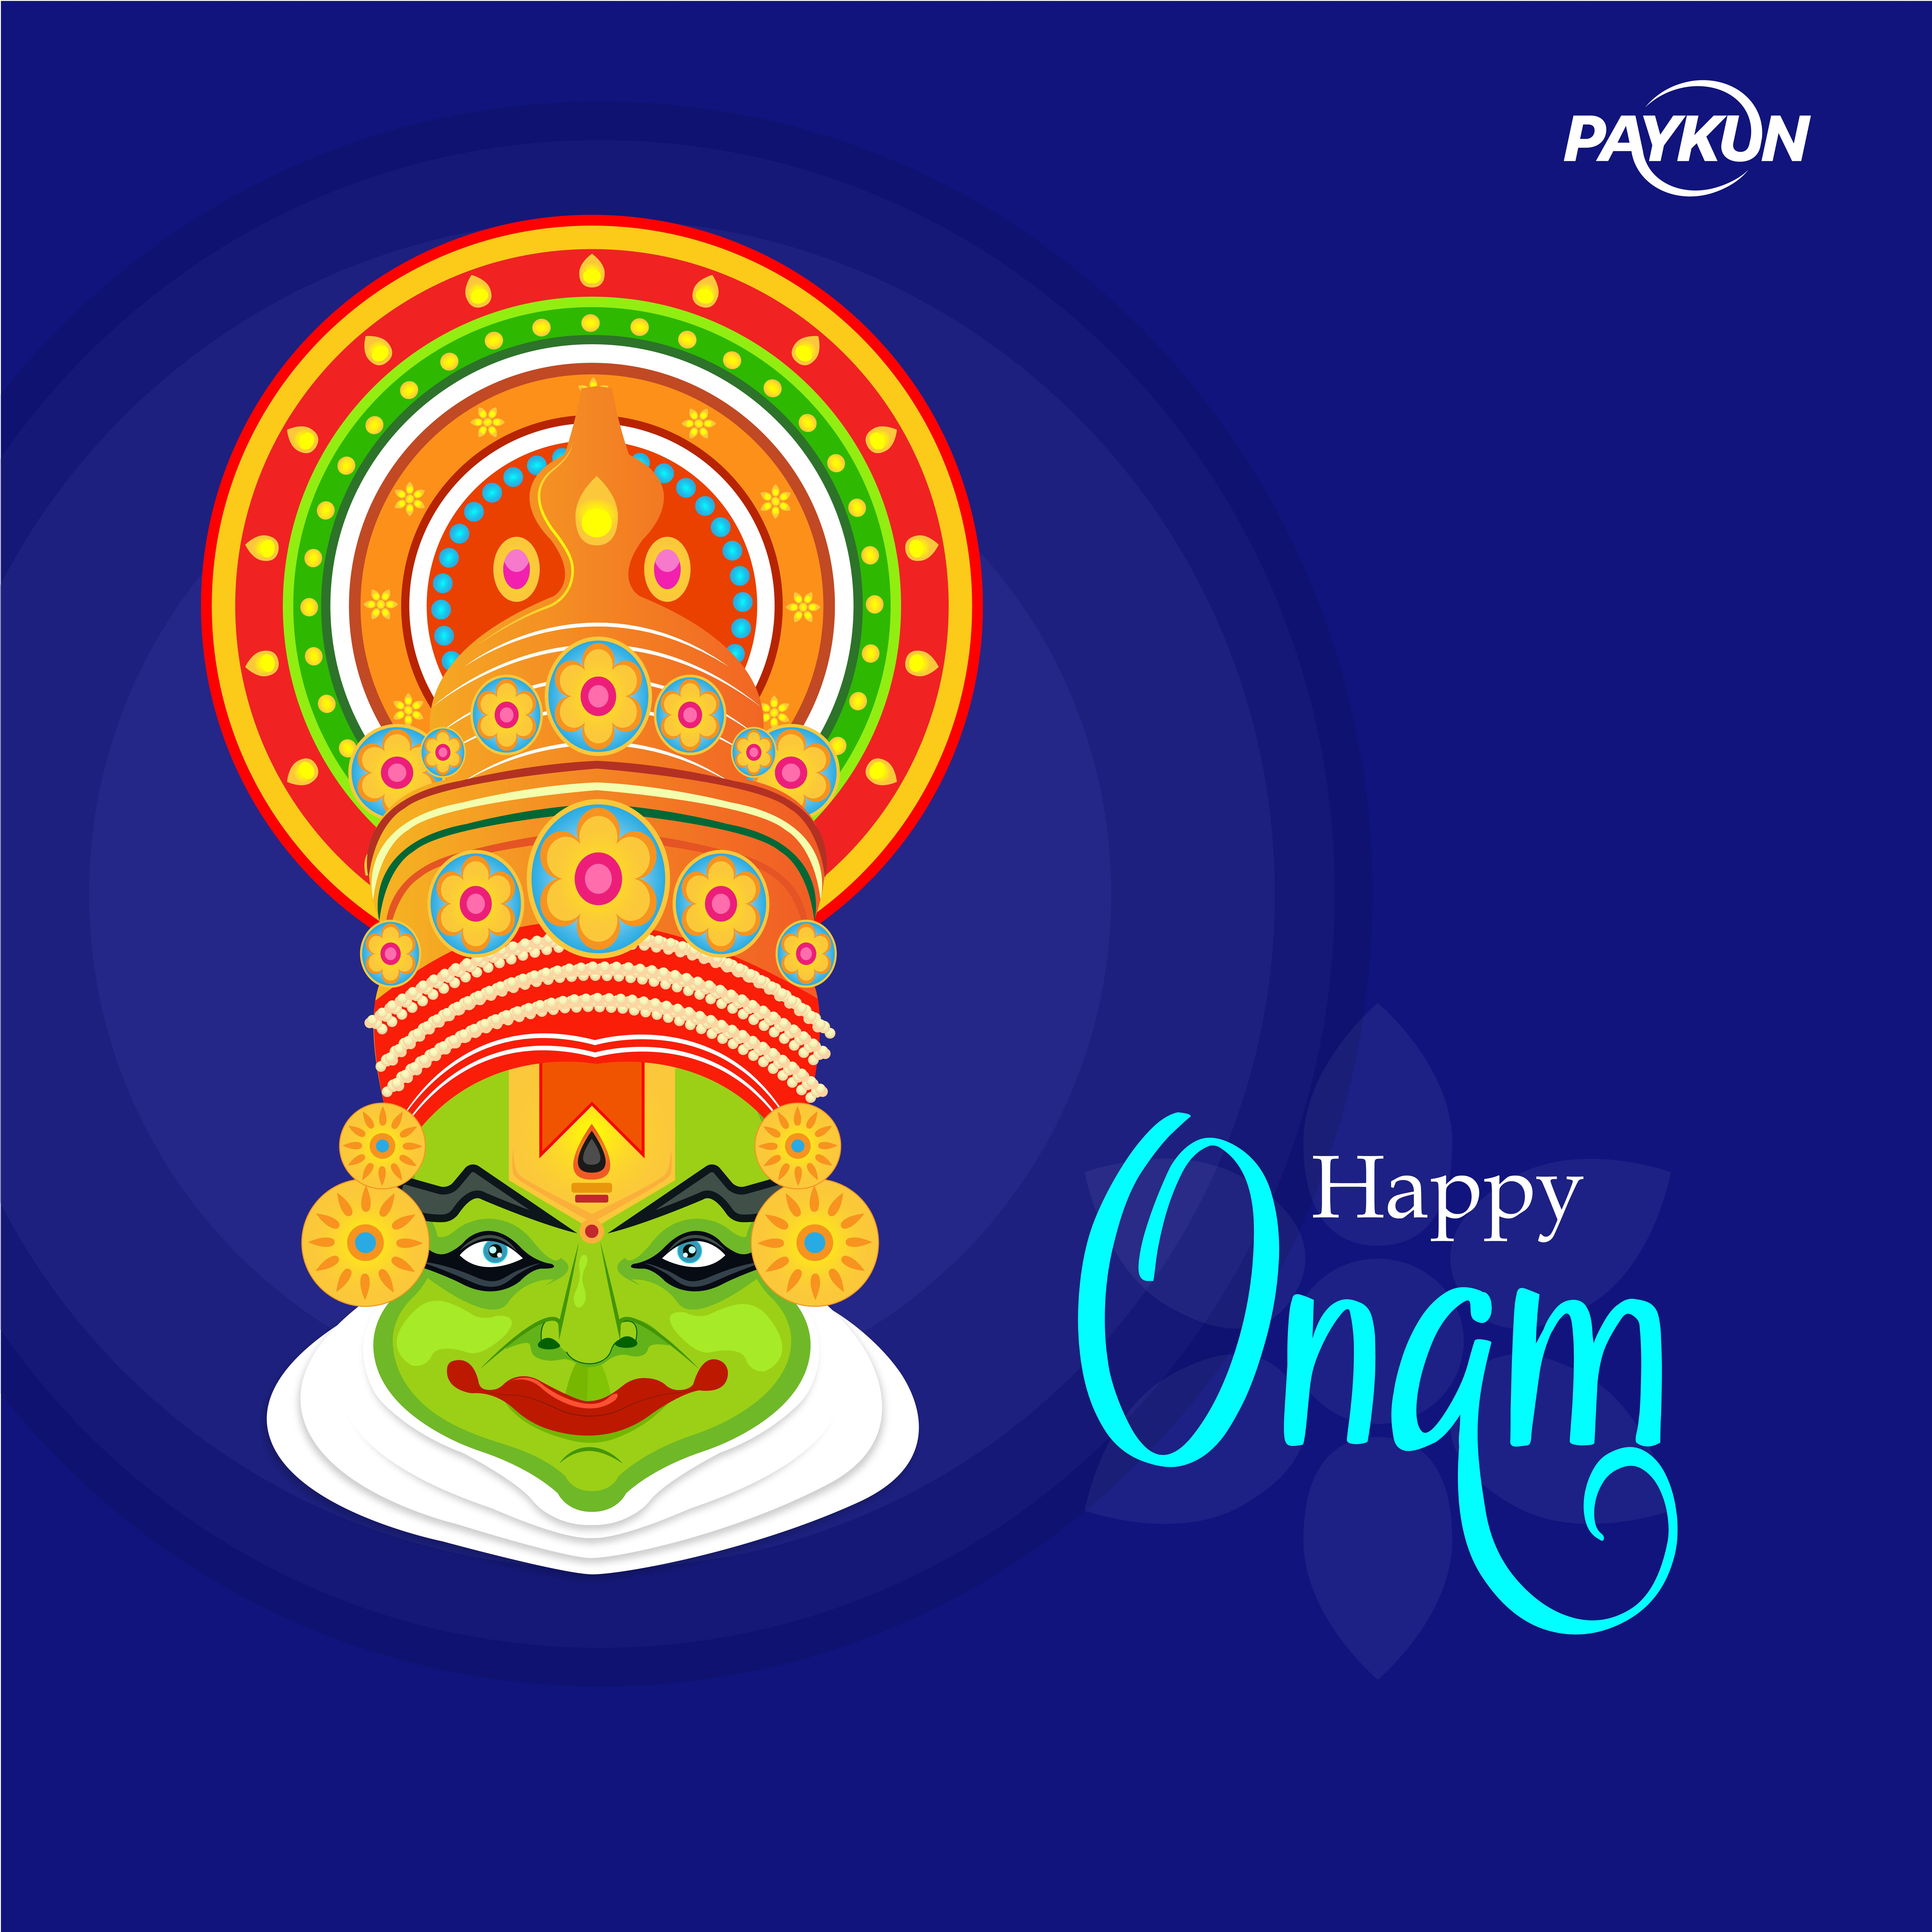 May the spirit of onam guide you in your life and fulfill